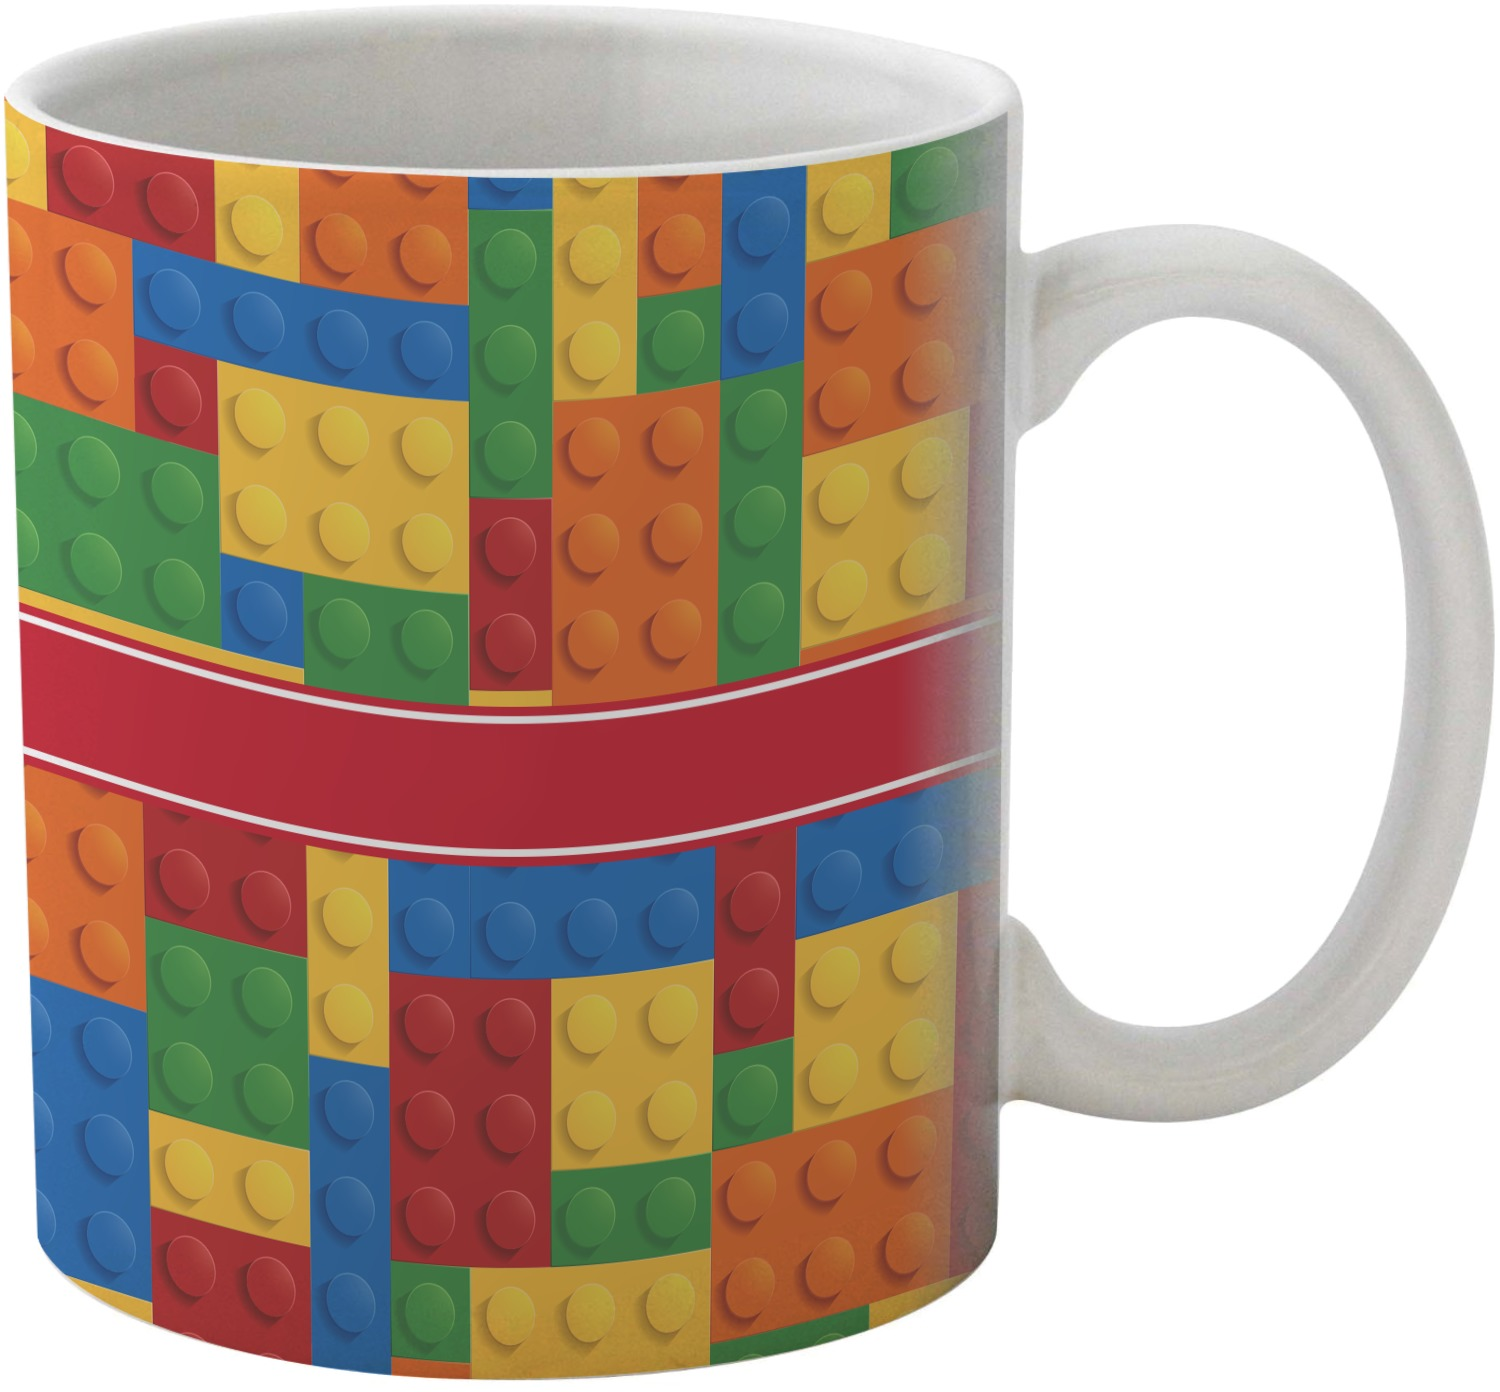 how to make personalized coffee mugs at home